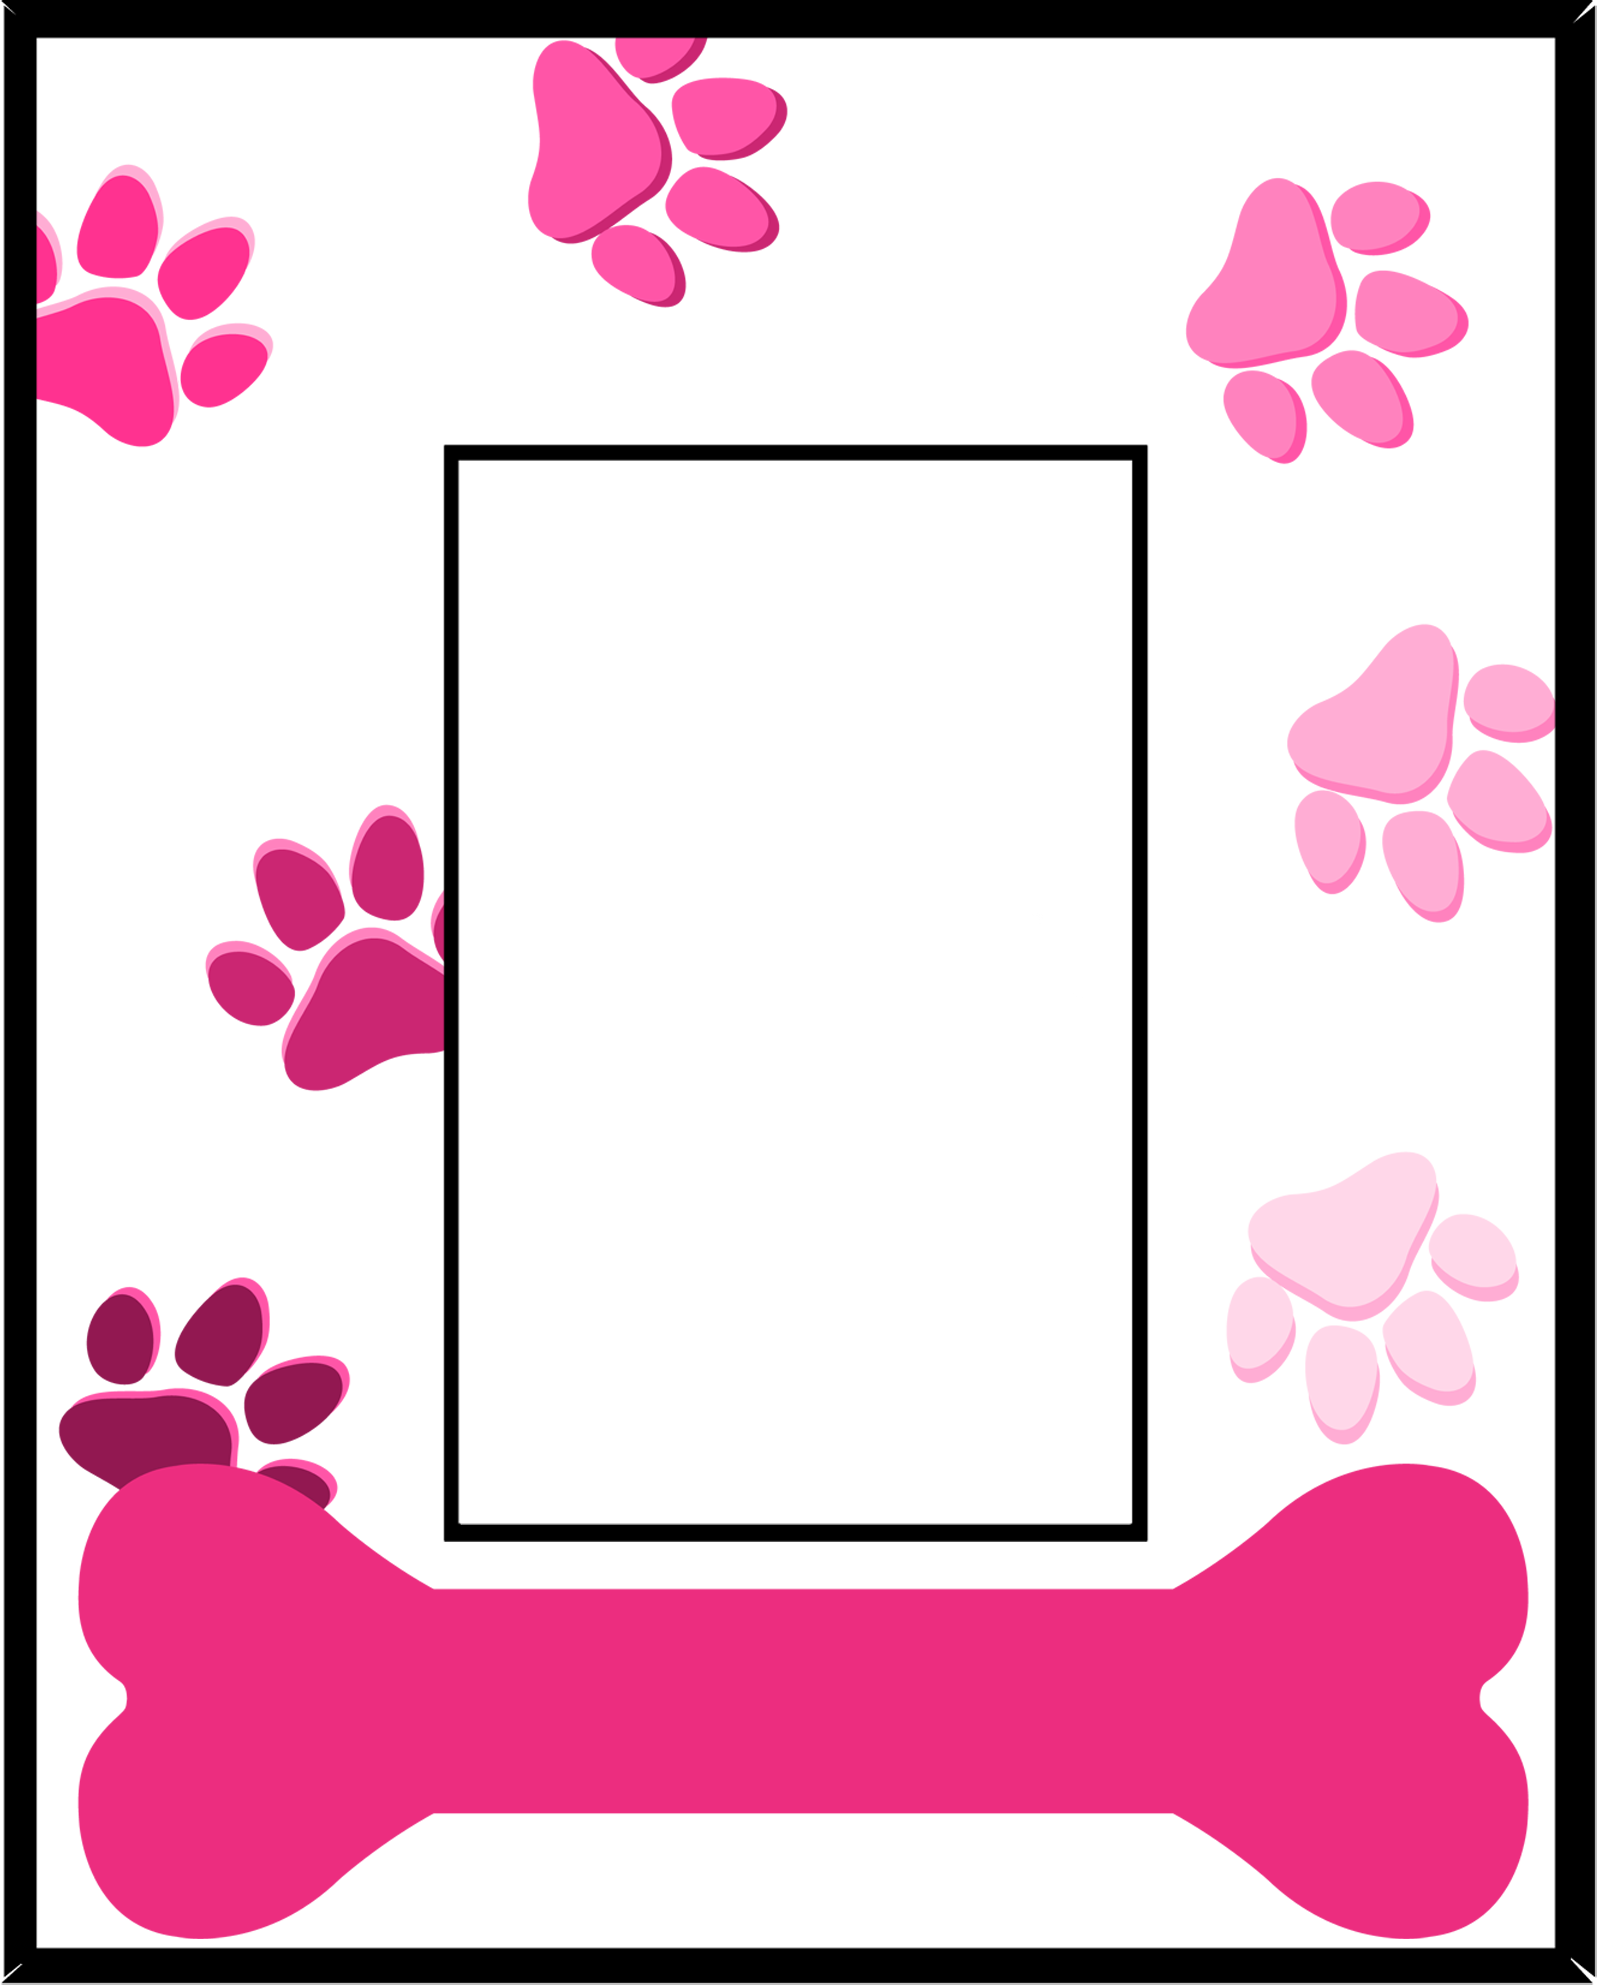 Dog frame clipart. Picture frames amazon in